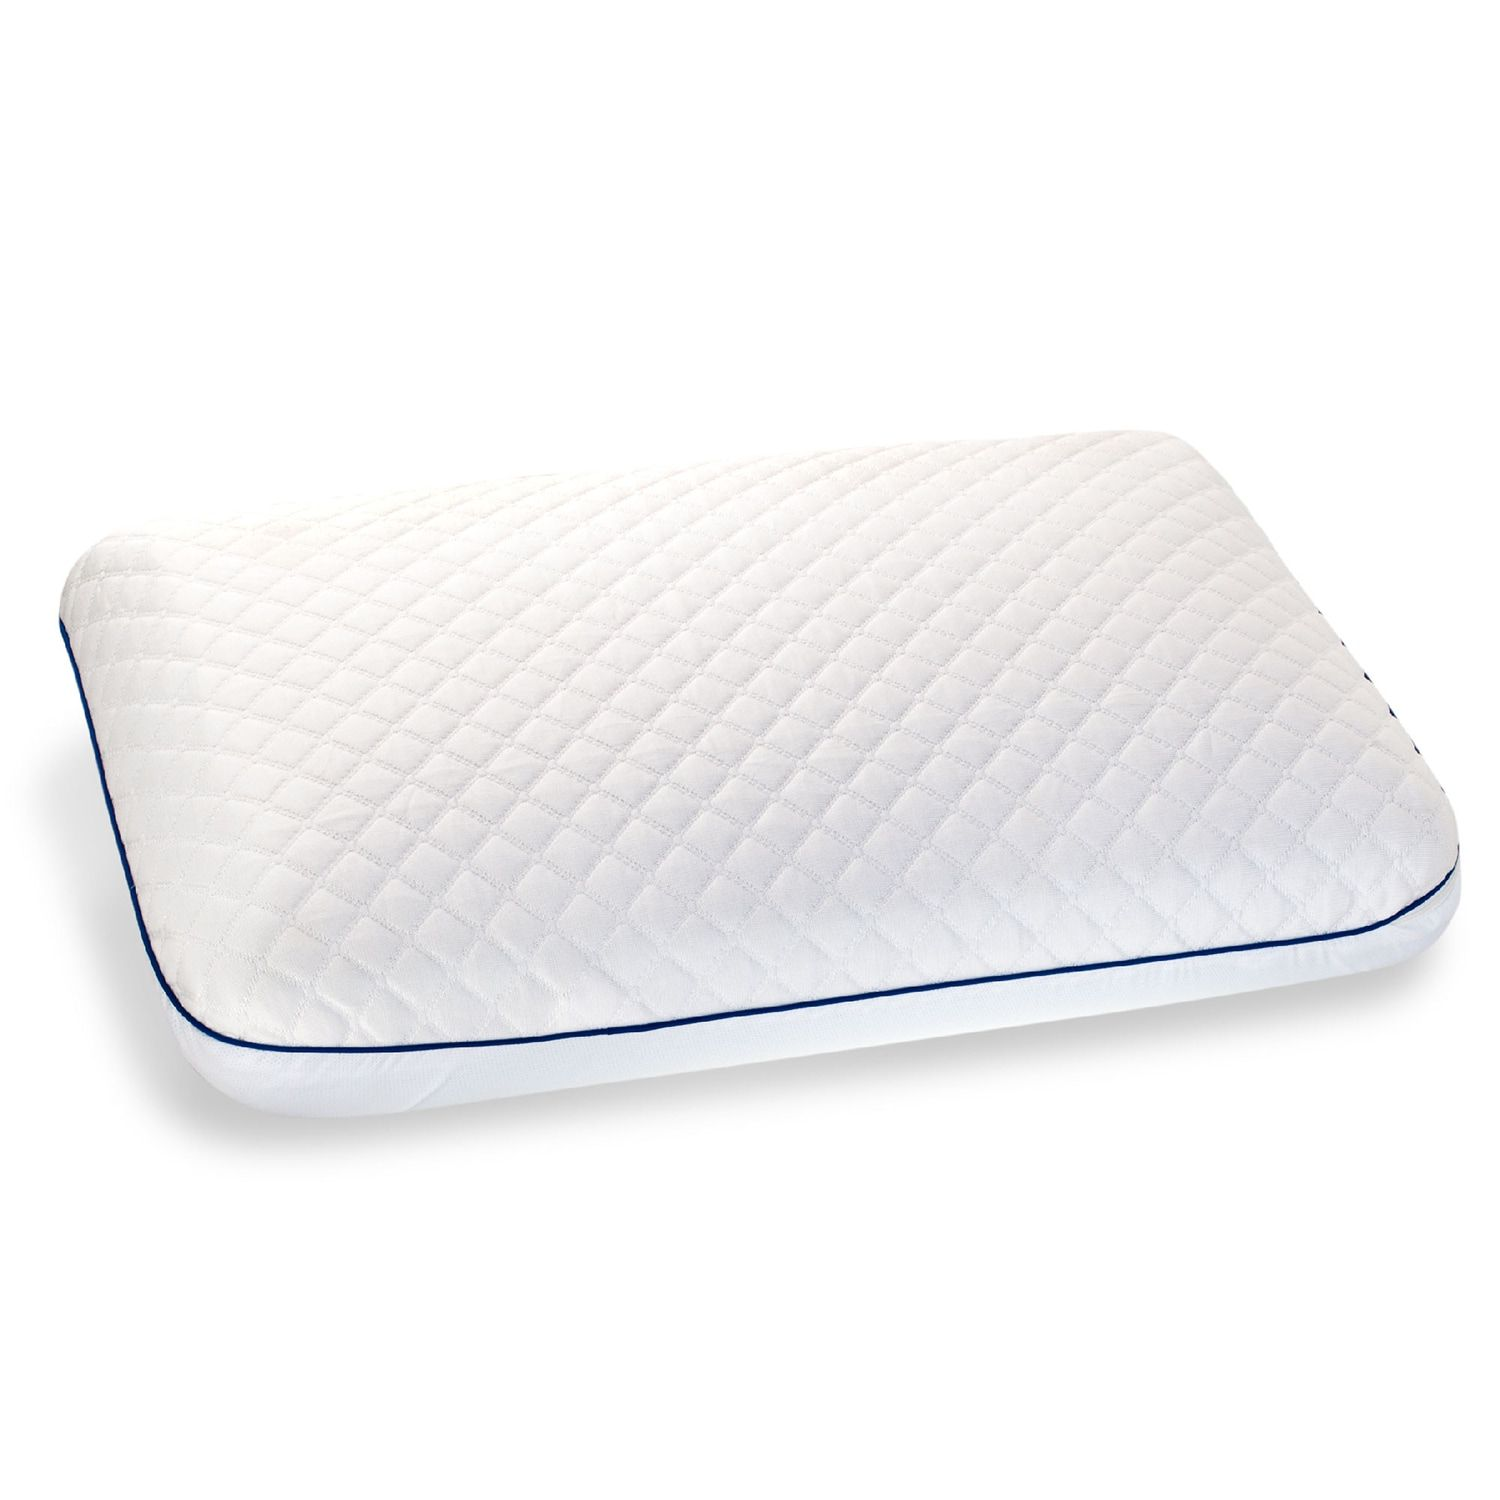 Serta Staycool Gel Memory Foam Pillow Gel Staycool Serta Pillow Memory Foam Pillow Foam Pillows Serta Memory Foam